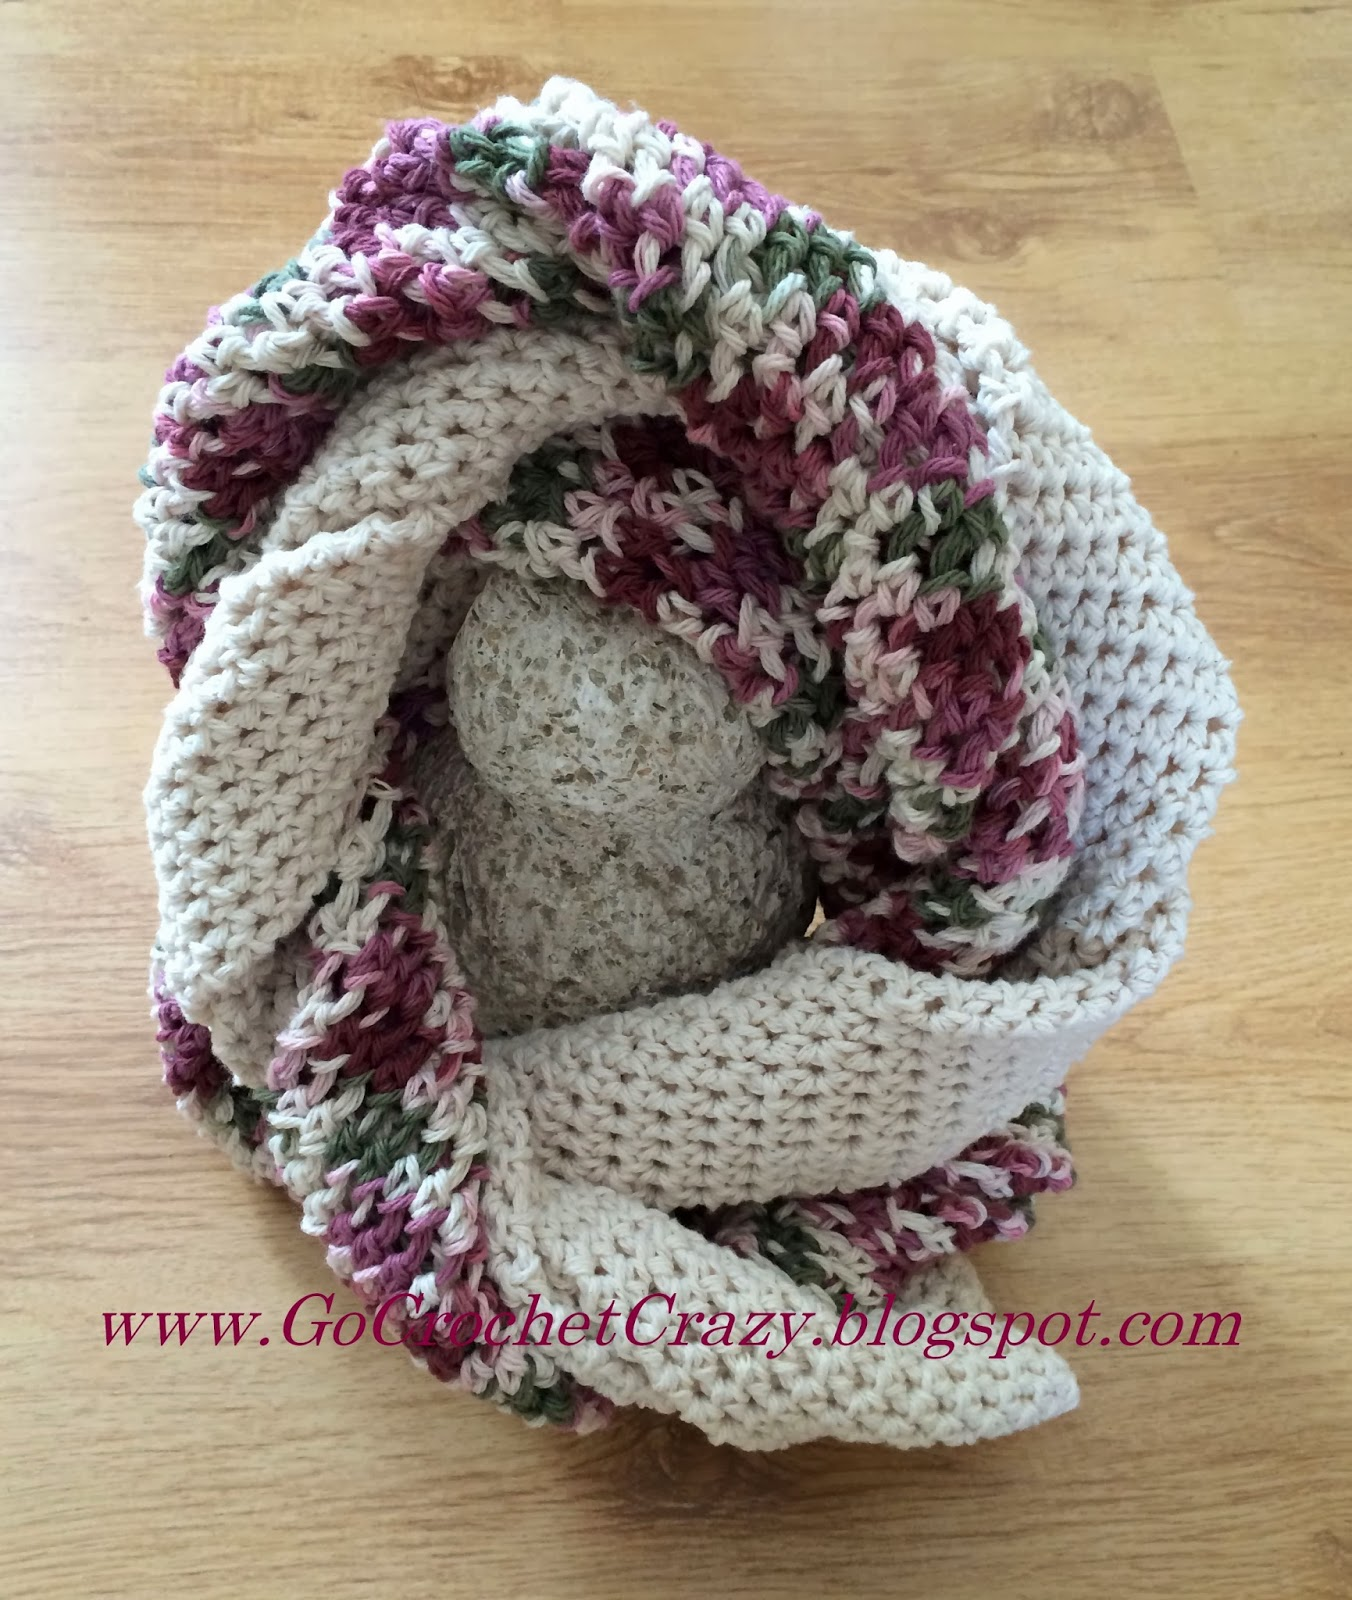 Go Crochet Crazy's Twisted Infinity Scarf is finally off-the-hook!